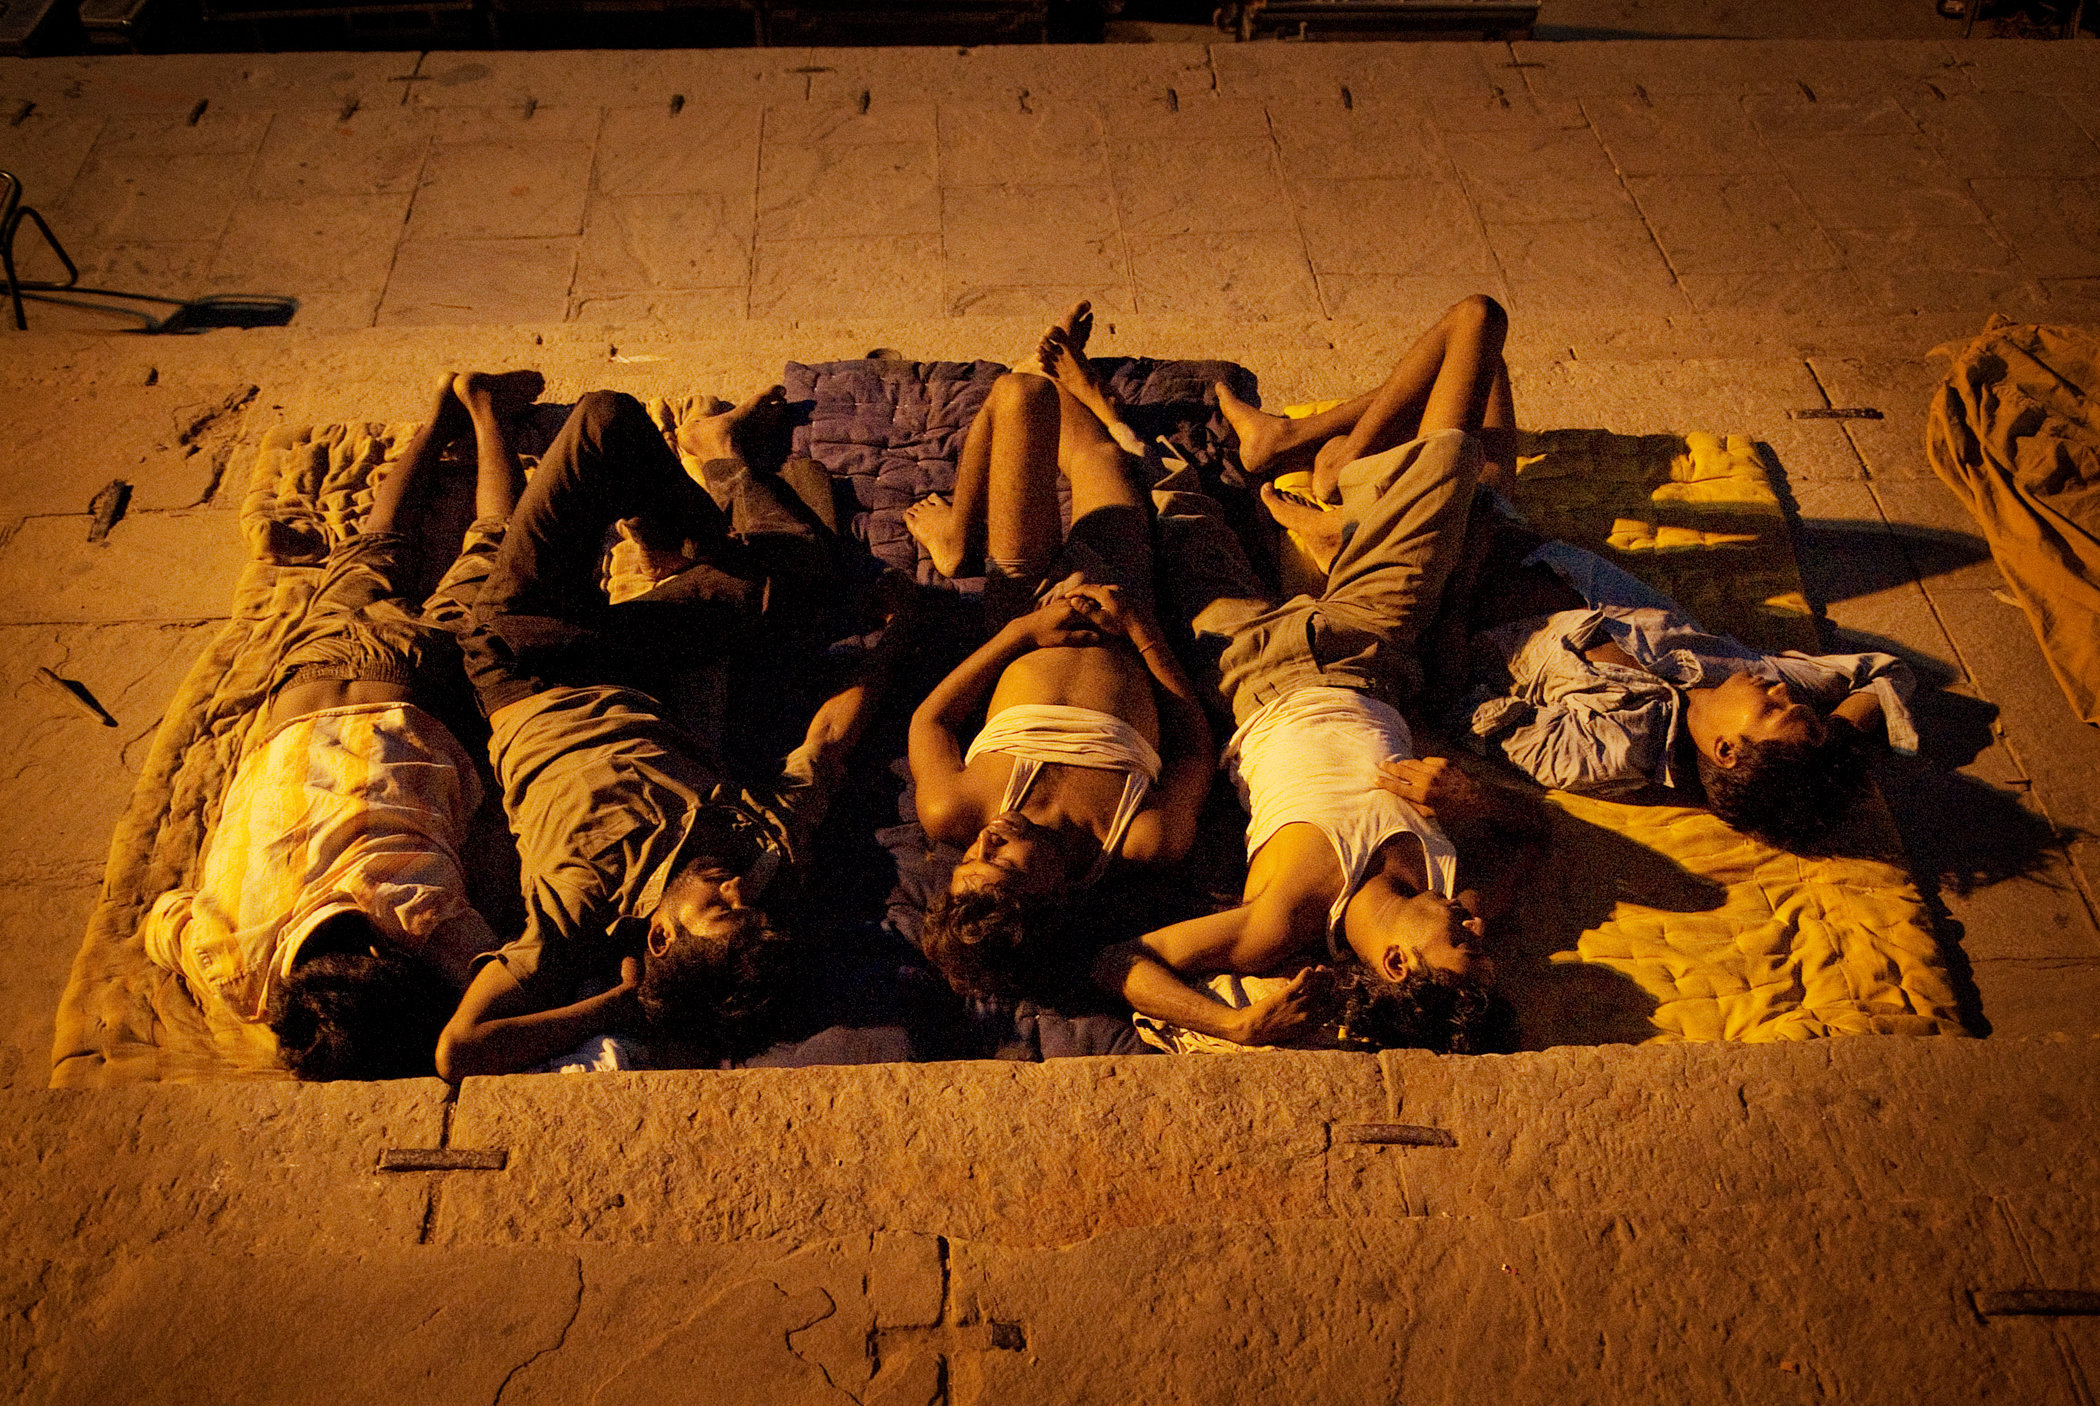 Sleeping on the Ganges II